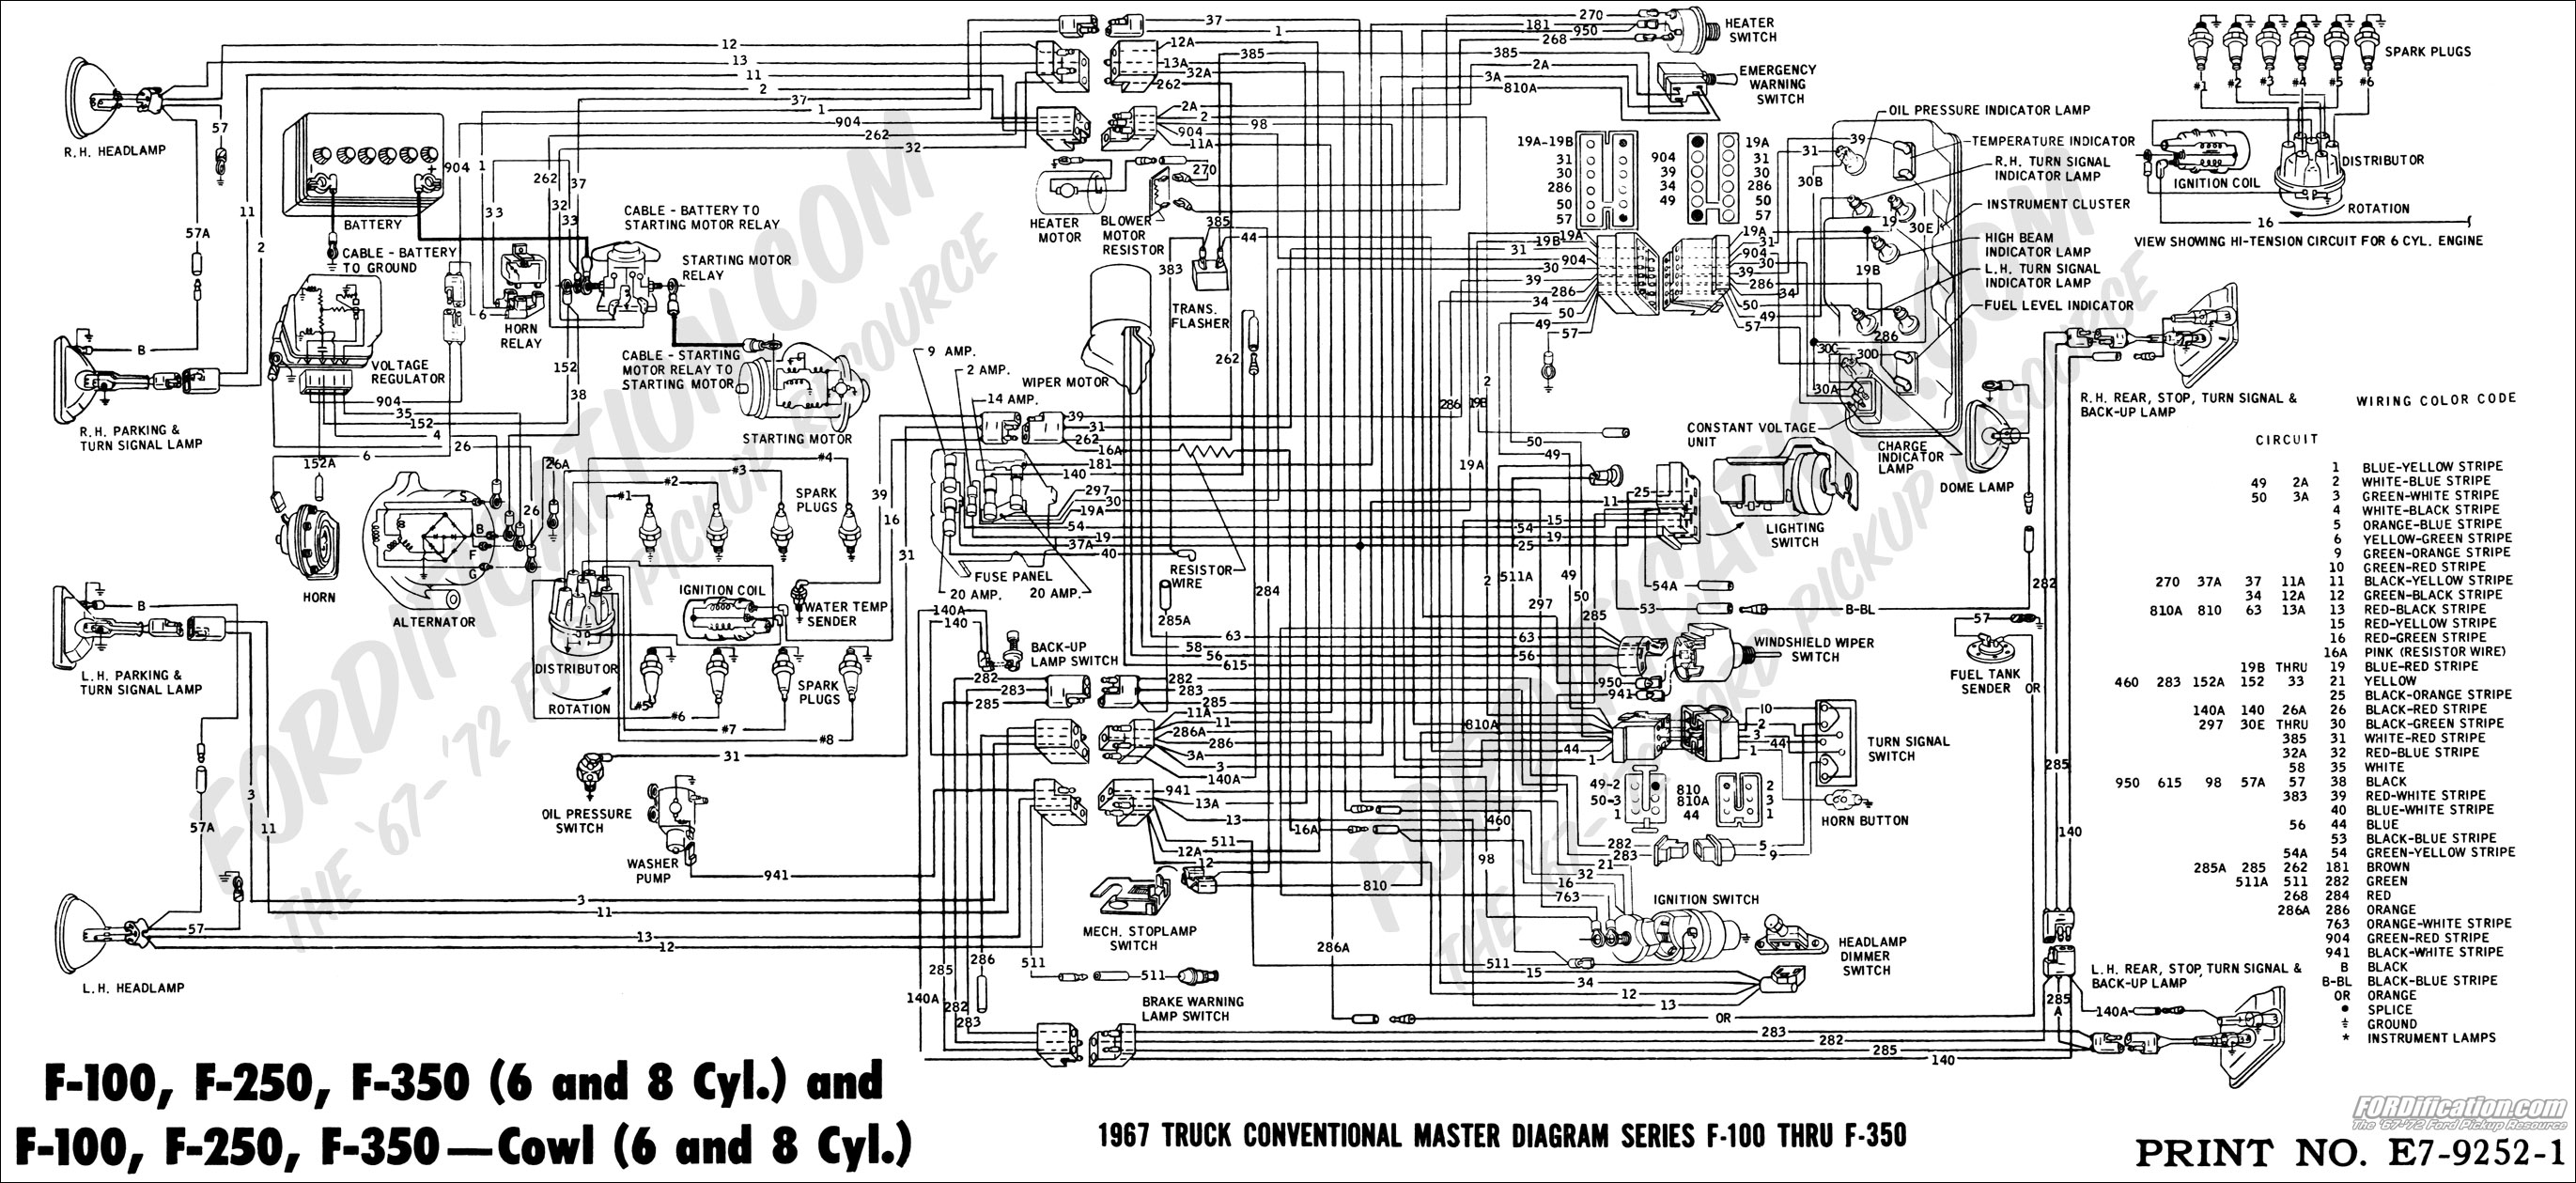 67masterdiagram ford truck technical drawings and schematics section h wiring ford wiring diagrams at creativeand.co